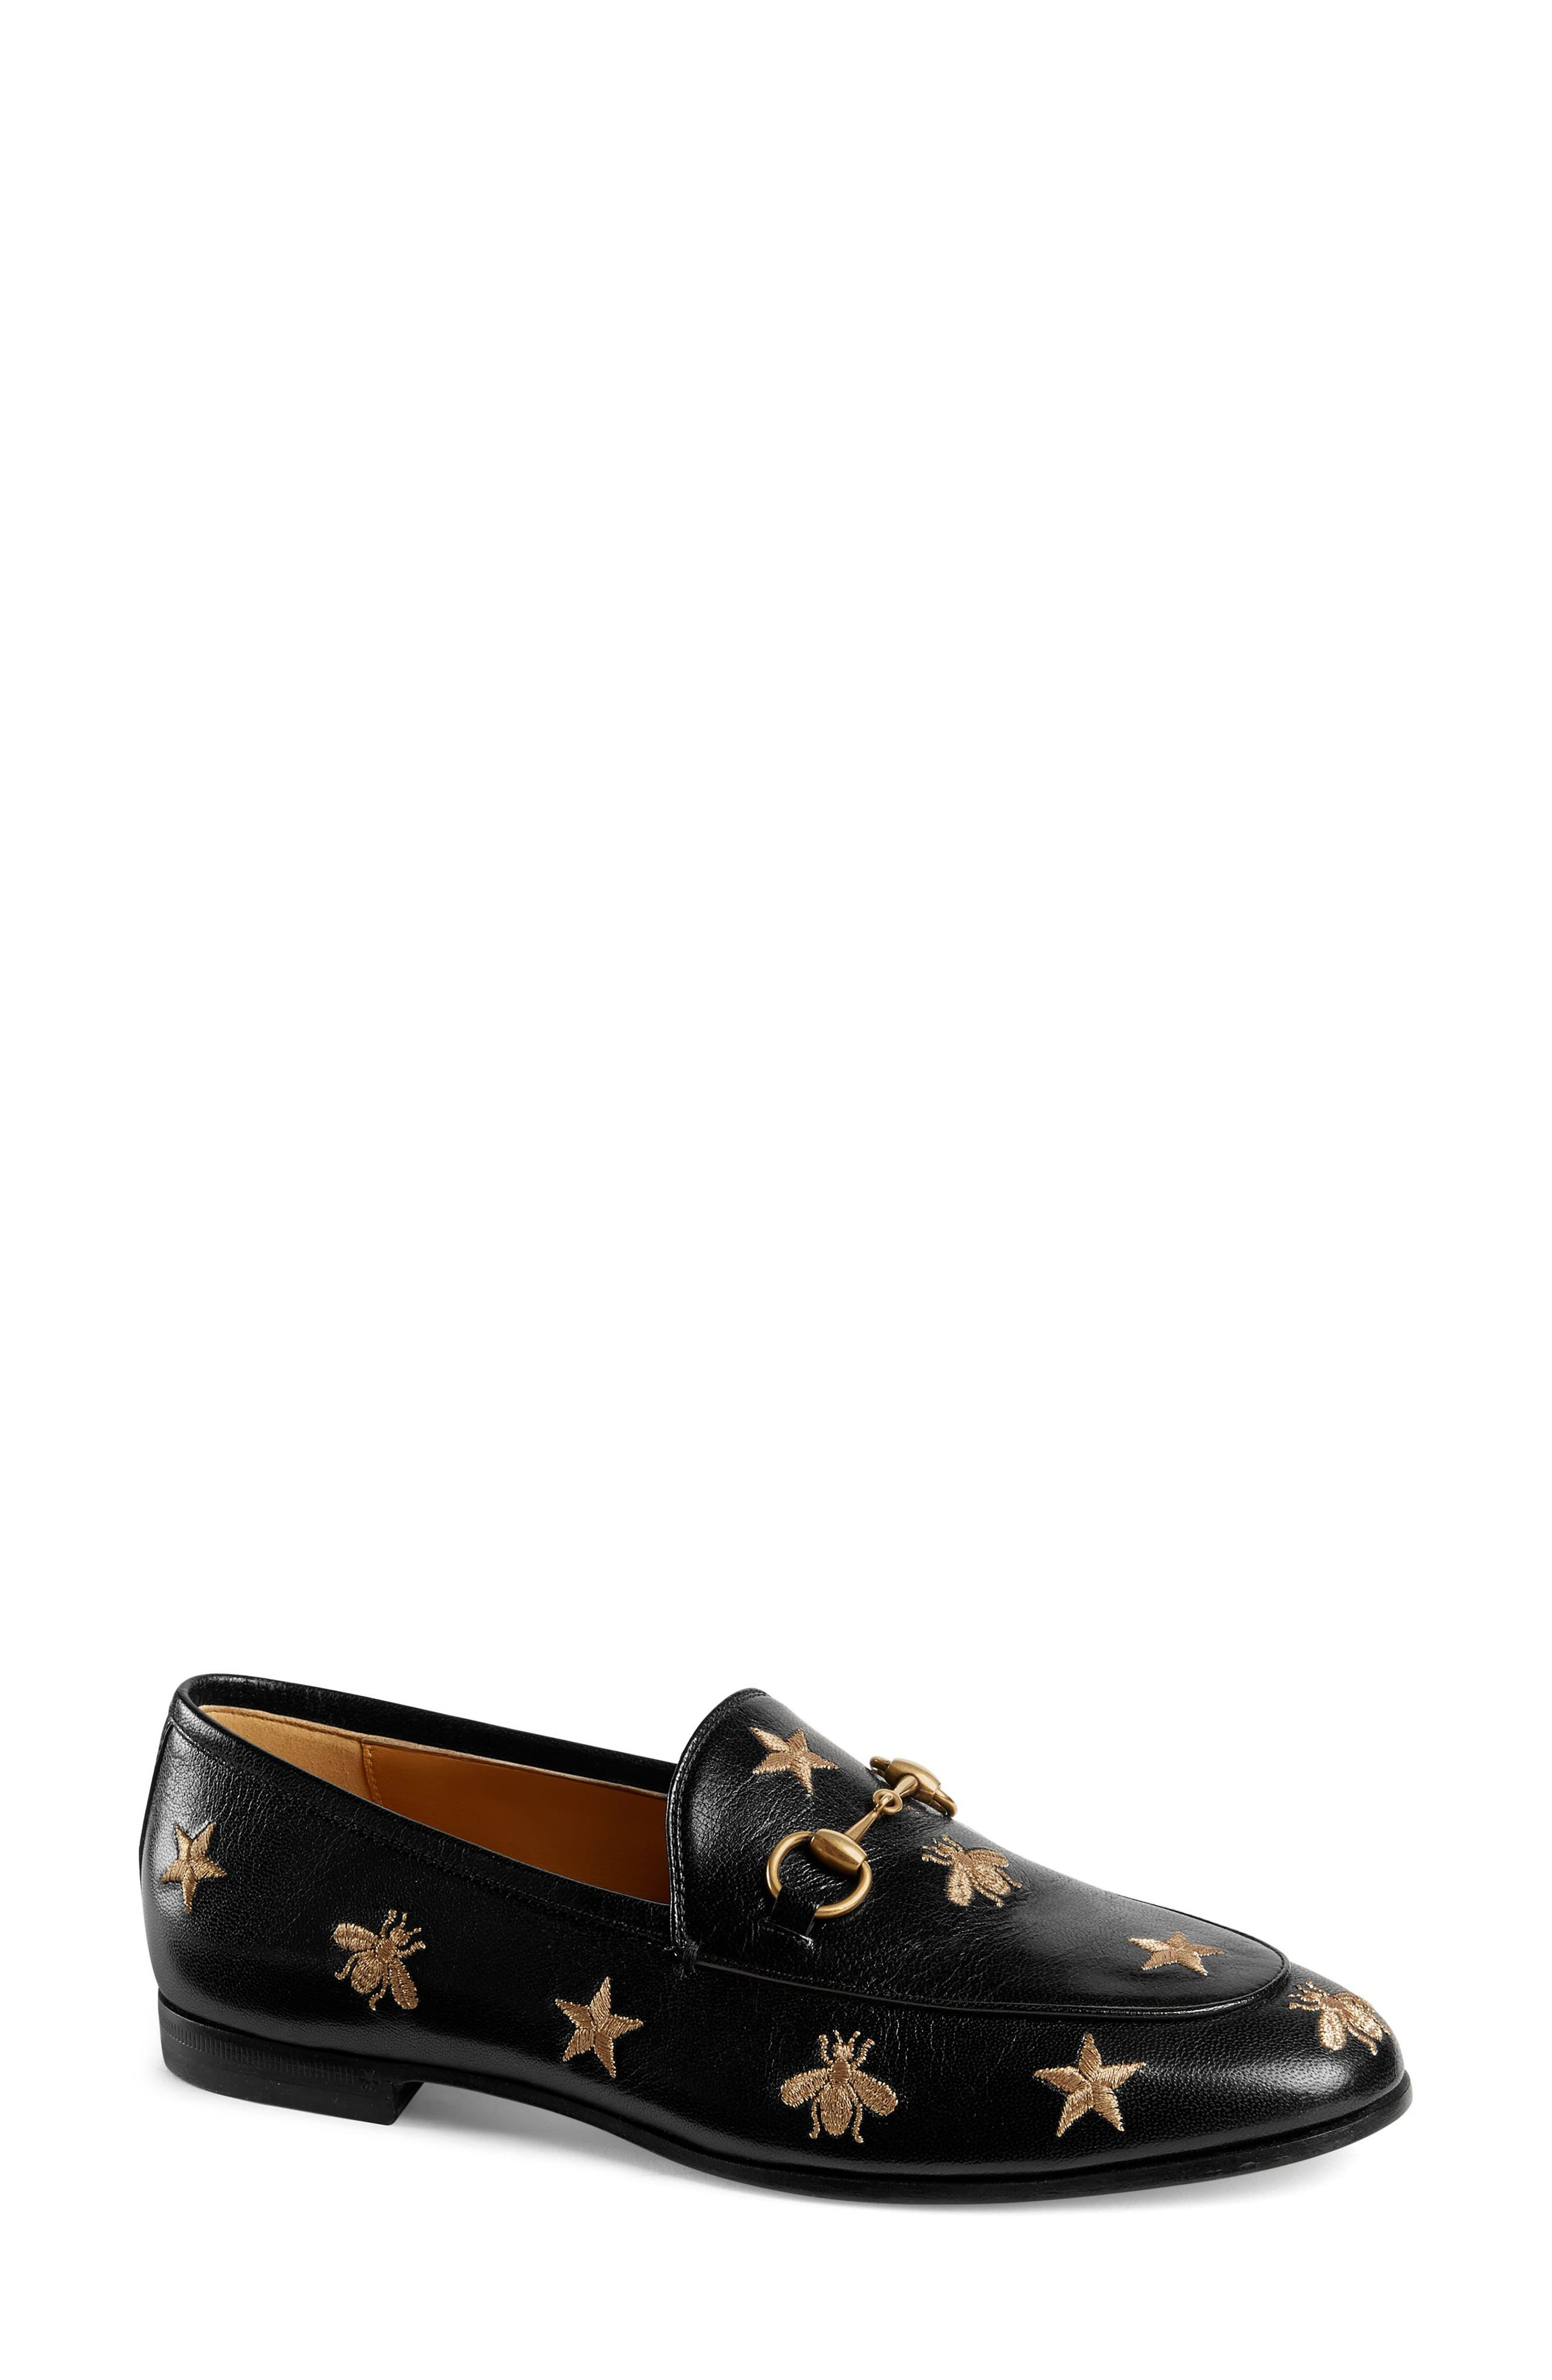 GUCCI Jordaan Embroidered Bee Loafer, Main, color, BLACK